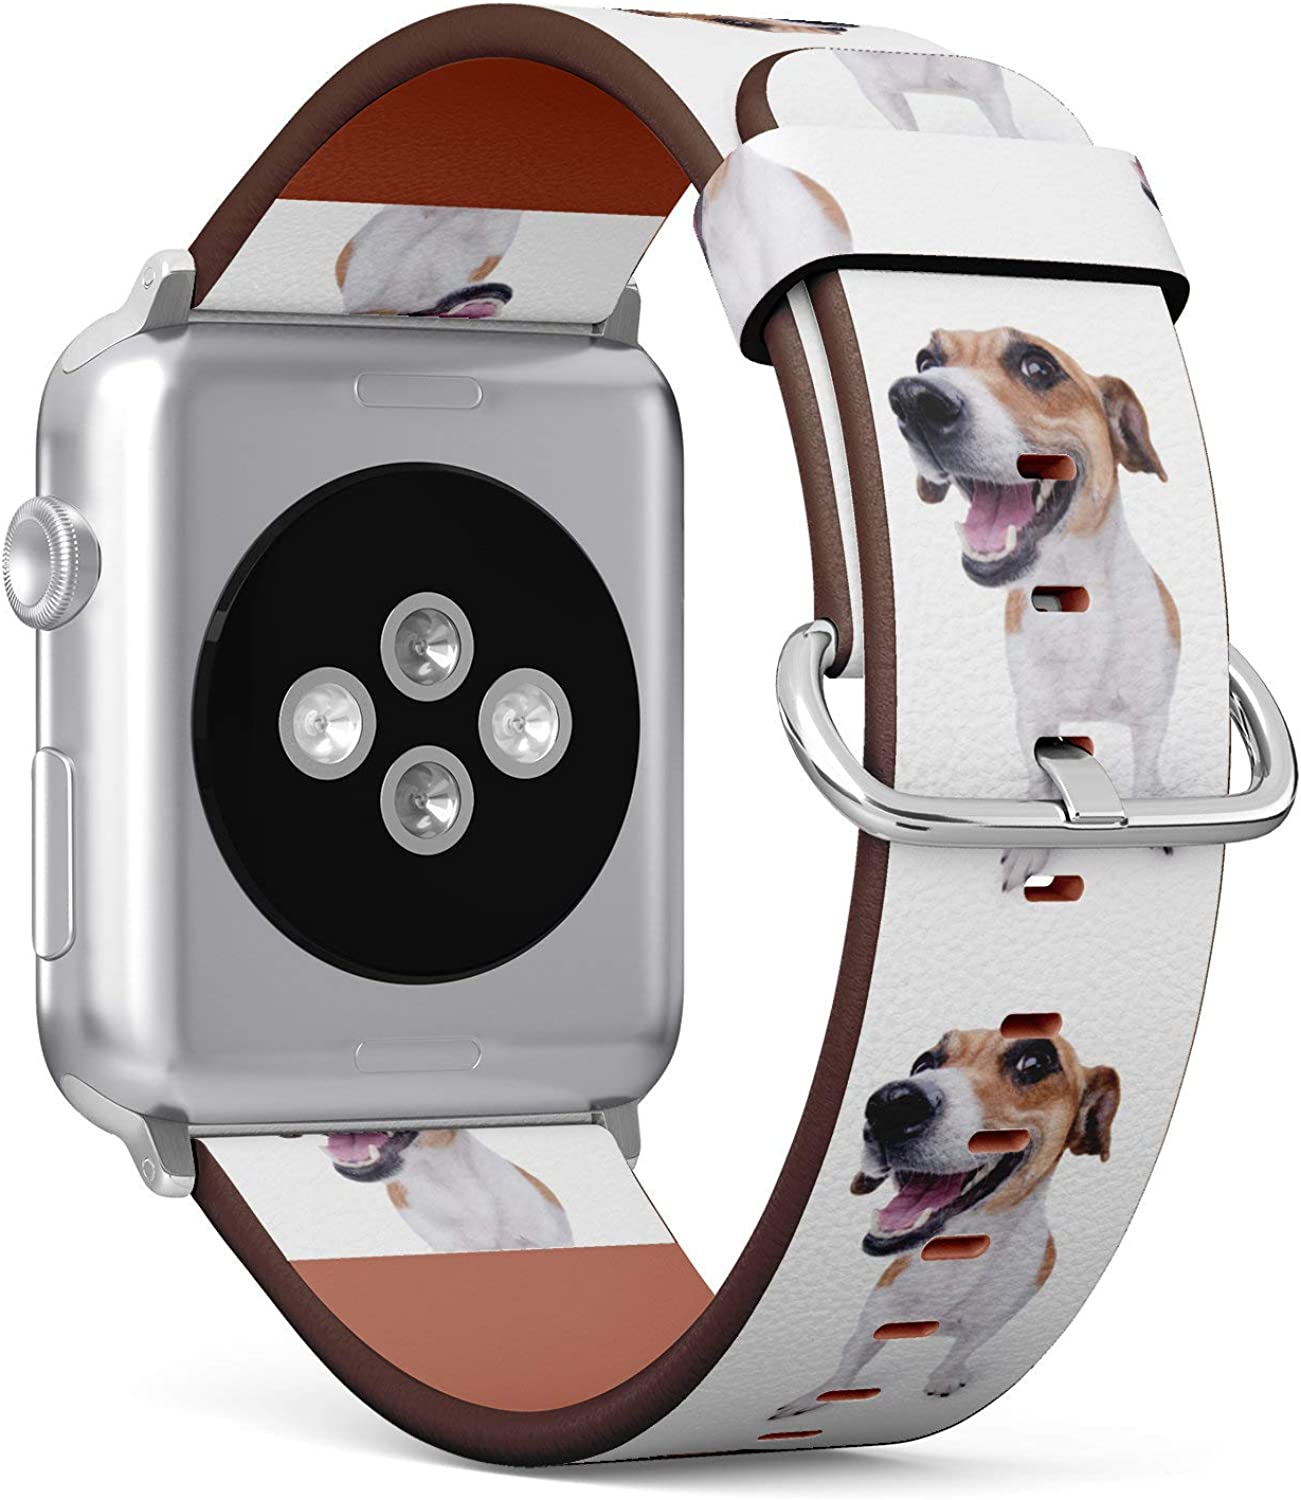 (Funny Jack Russell Terrier Dog) Patterned Leather Wristband Strap for Apple Watch Series 4/3/2/1 gen,Replacement for iWatch 38mm / 40mm Bands